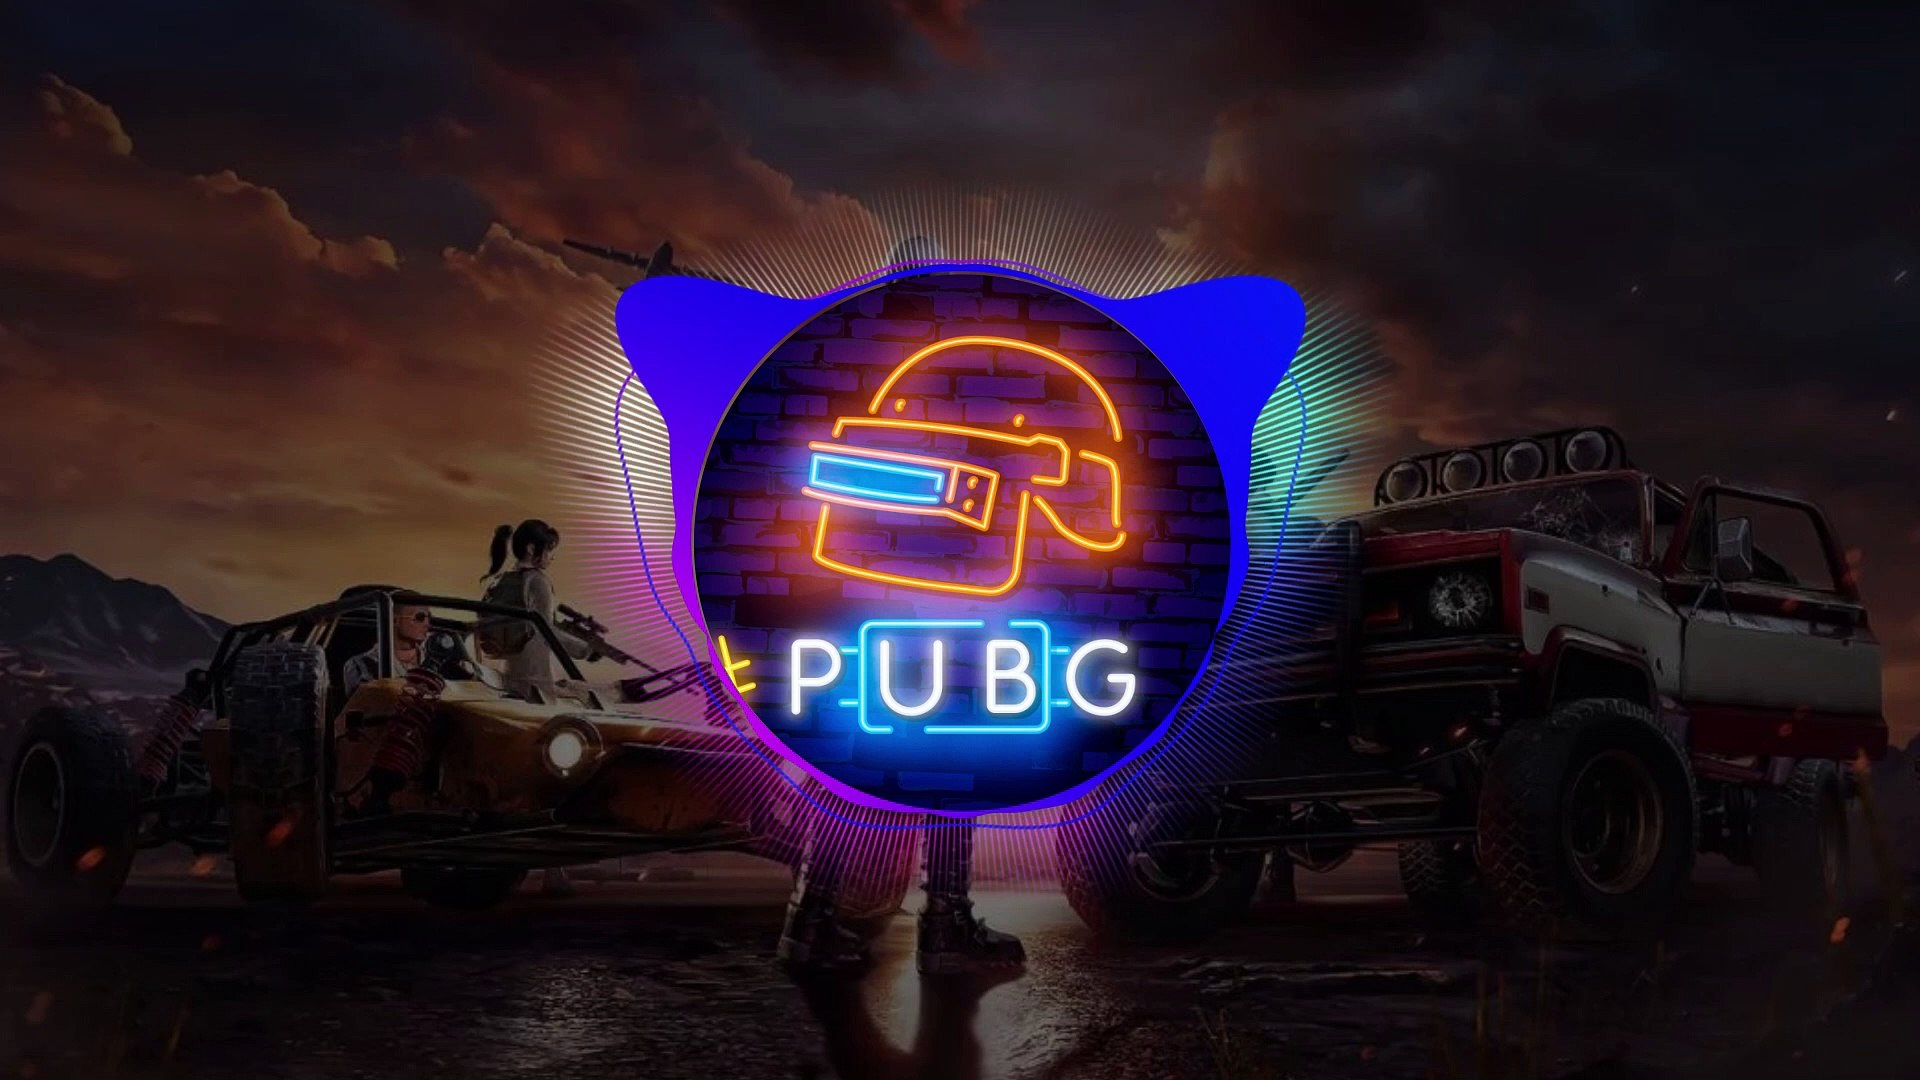 pubg song 2020 | Pubg DJ mix mashup songs | pubg song dj 2020 | pubg song remix dj